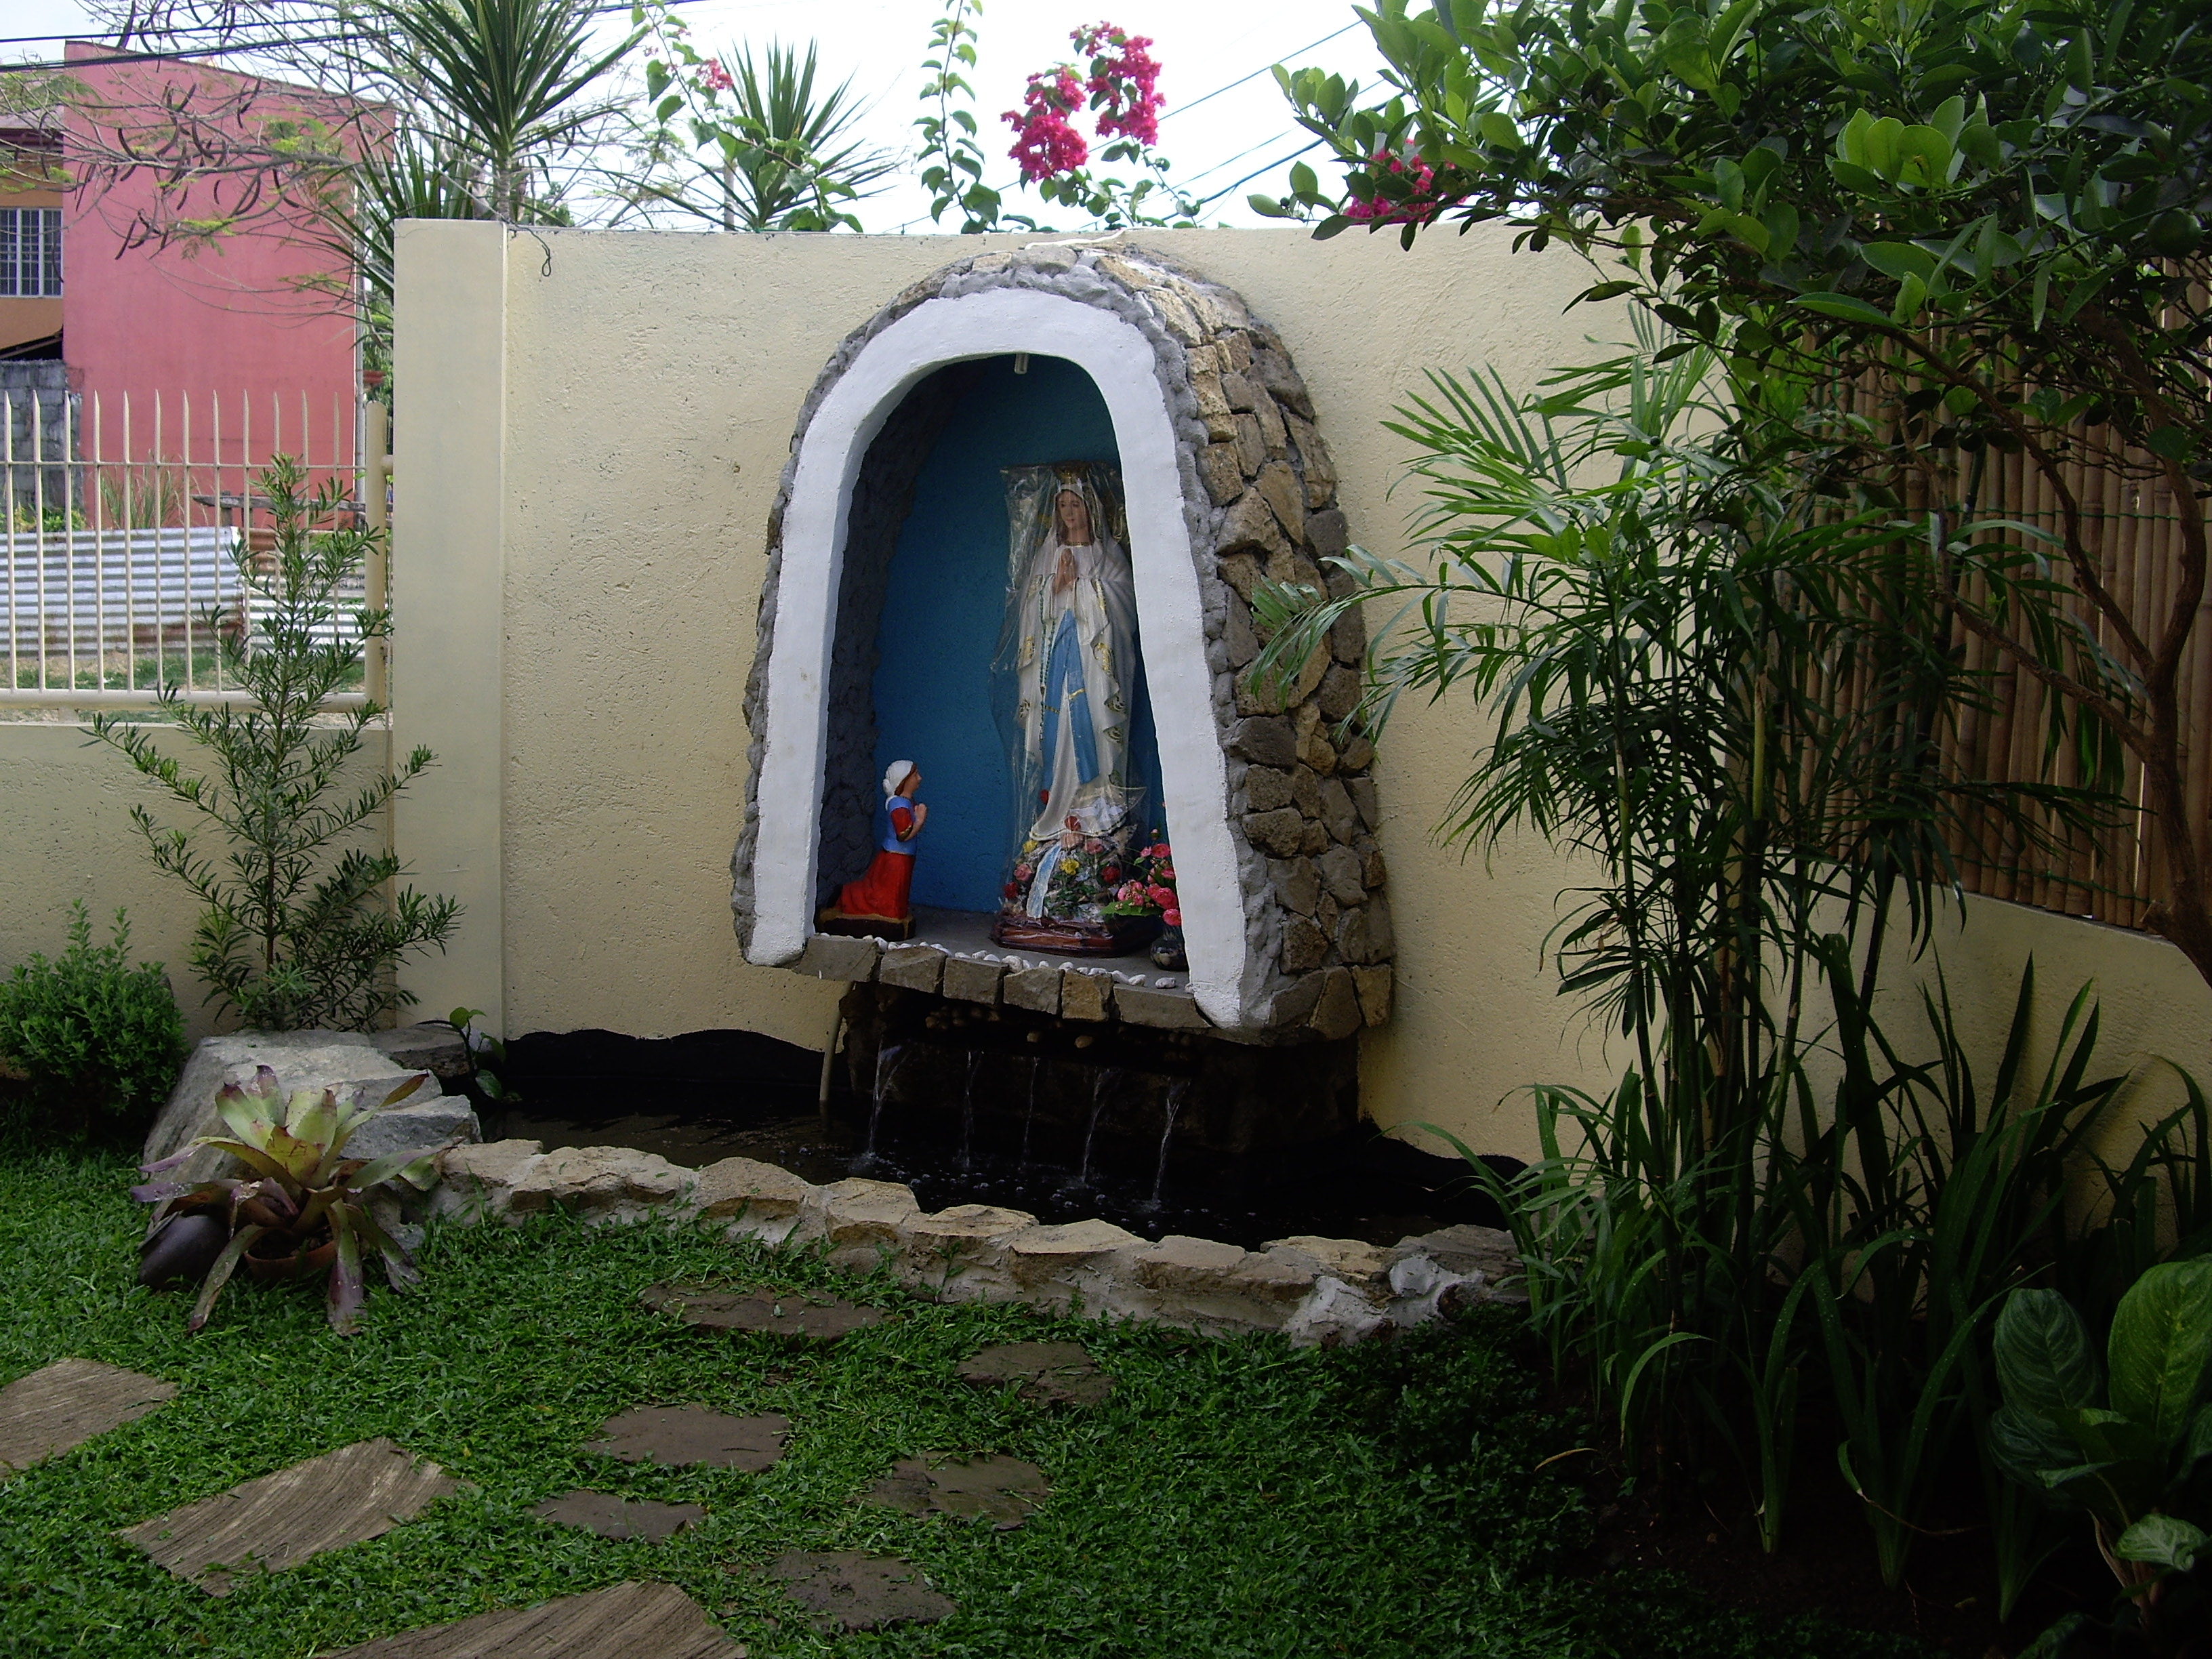 House grotto designs images galleries for Garden grotto designs